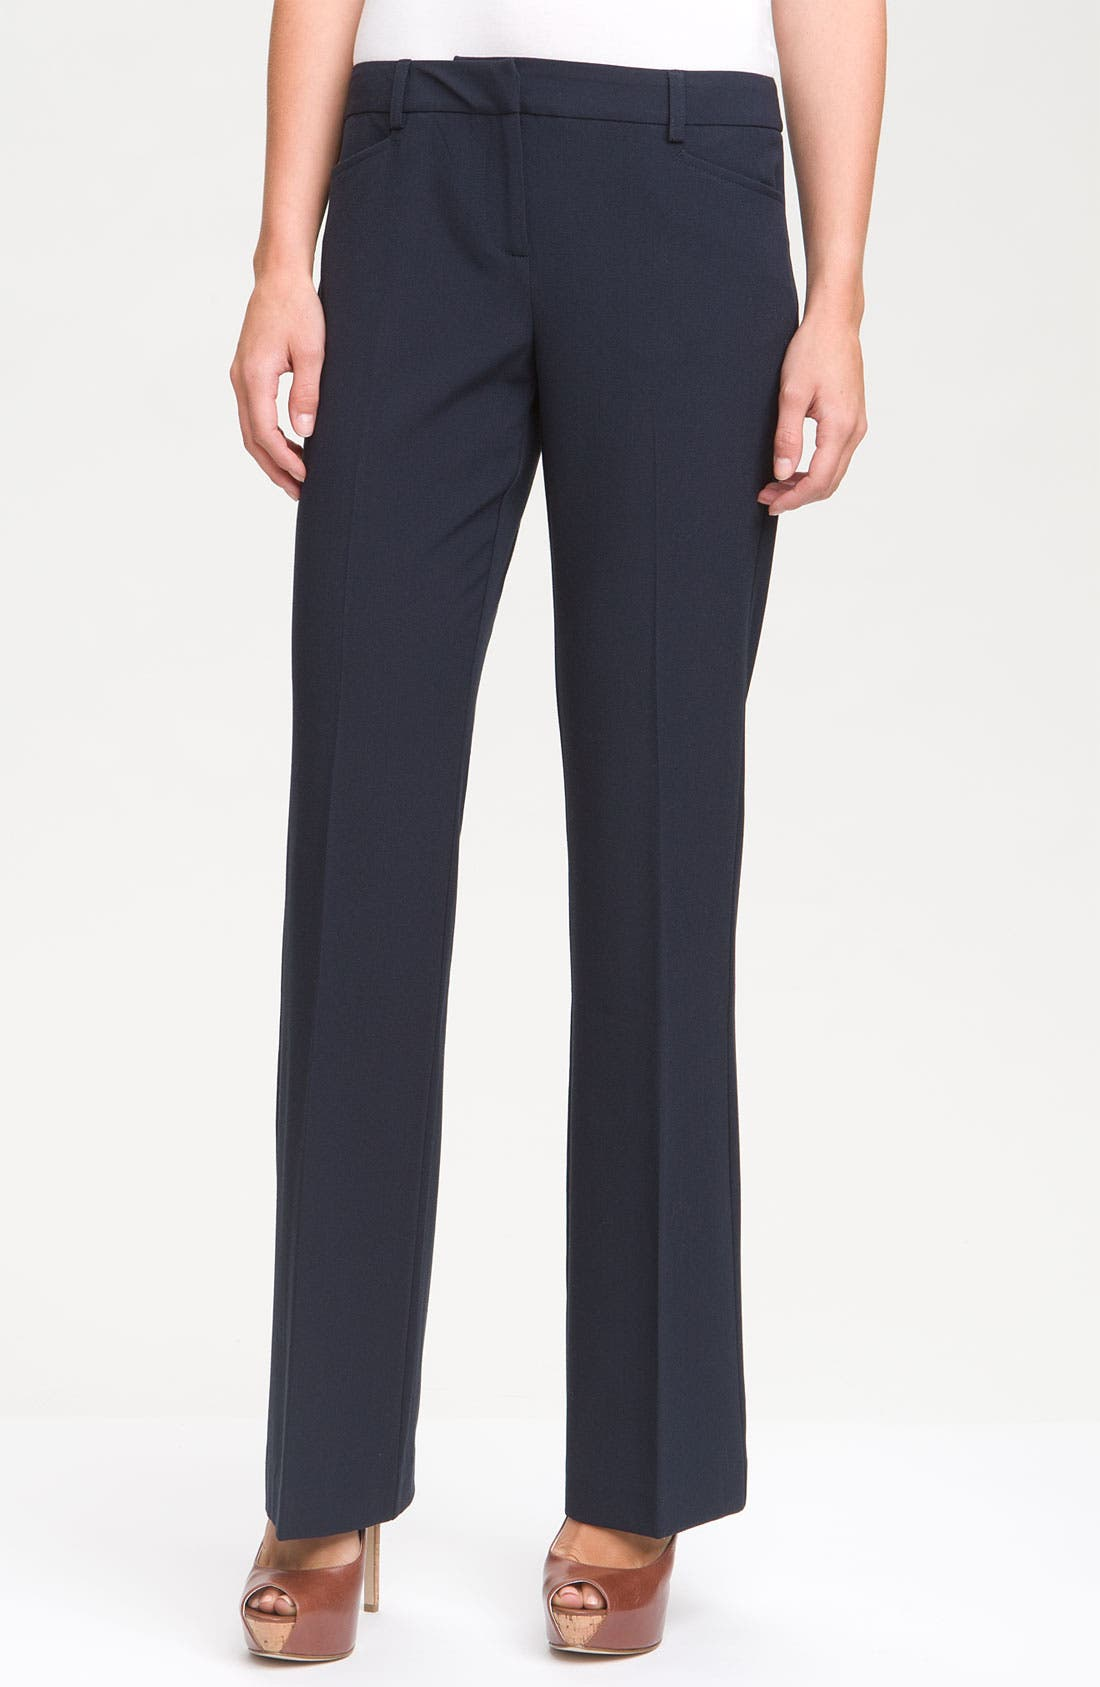 Alternate Image 1 Selected - MICHAEL Michael Kors Stretch Trousers (Petite)